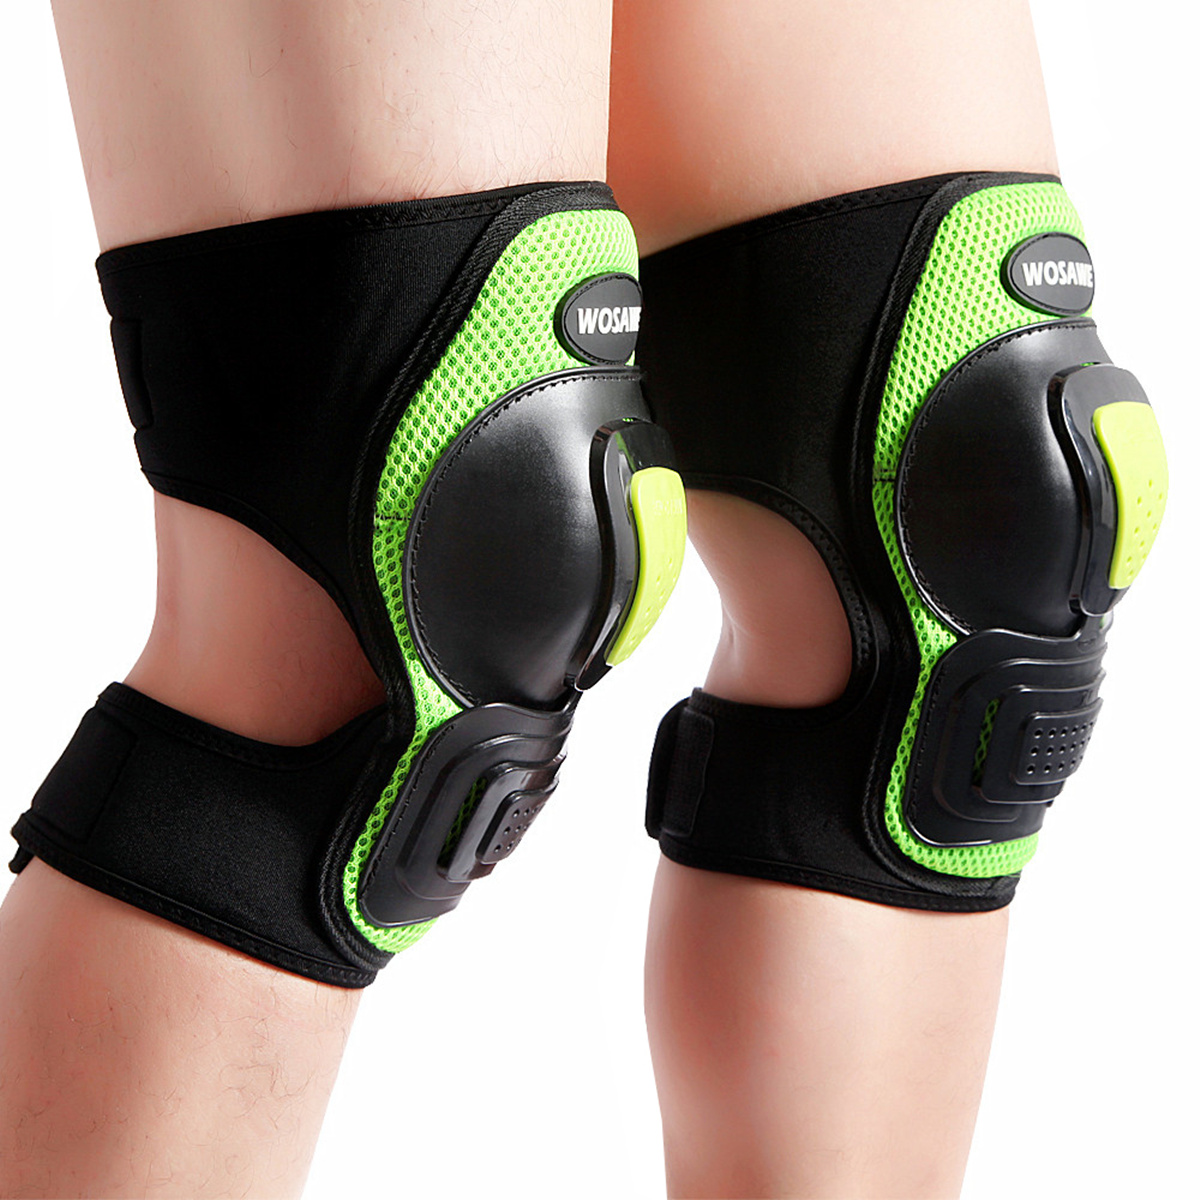 1 Pair Outdoor Sports Protective Gear Knee Pads Elbow Pads Wrist Guards Roller Skating Safety Protection